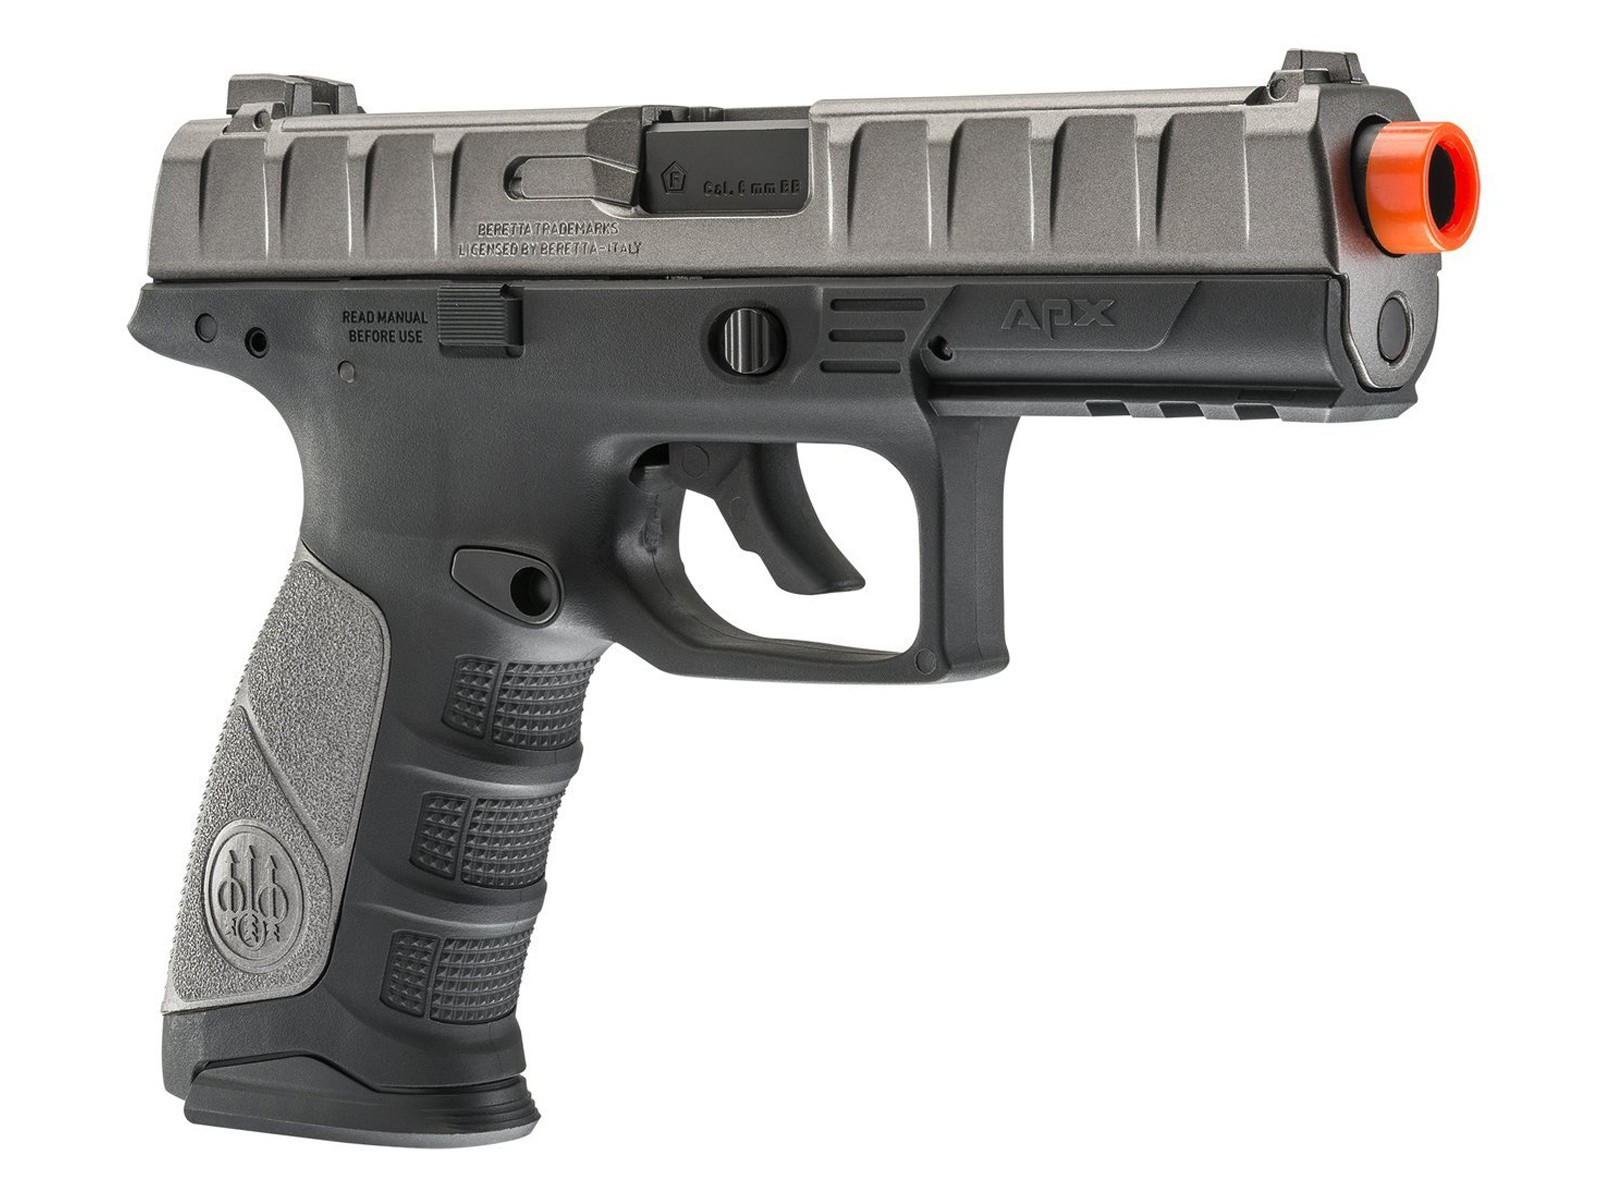 Beretta APX CO2 Metal Slide Airsoft Pistol, Black/Silver 6mm